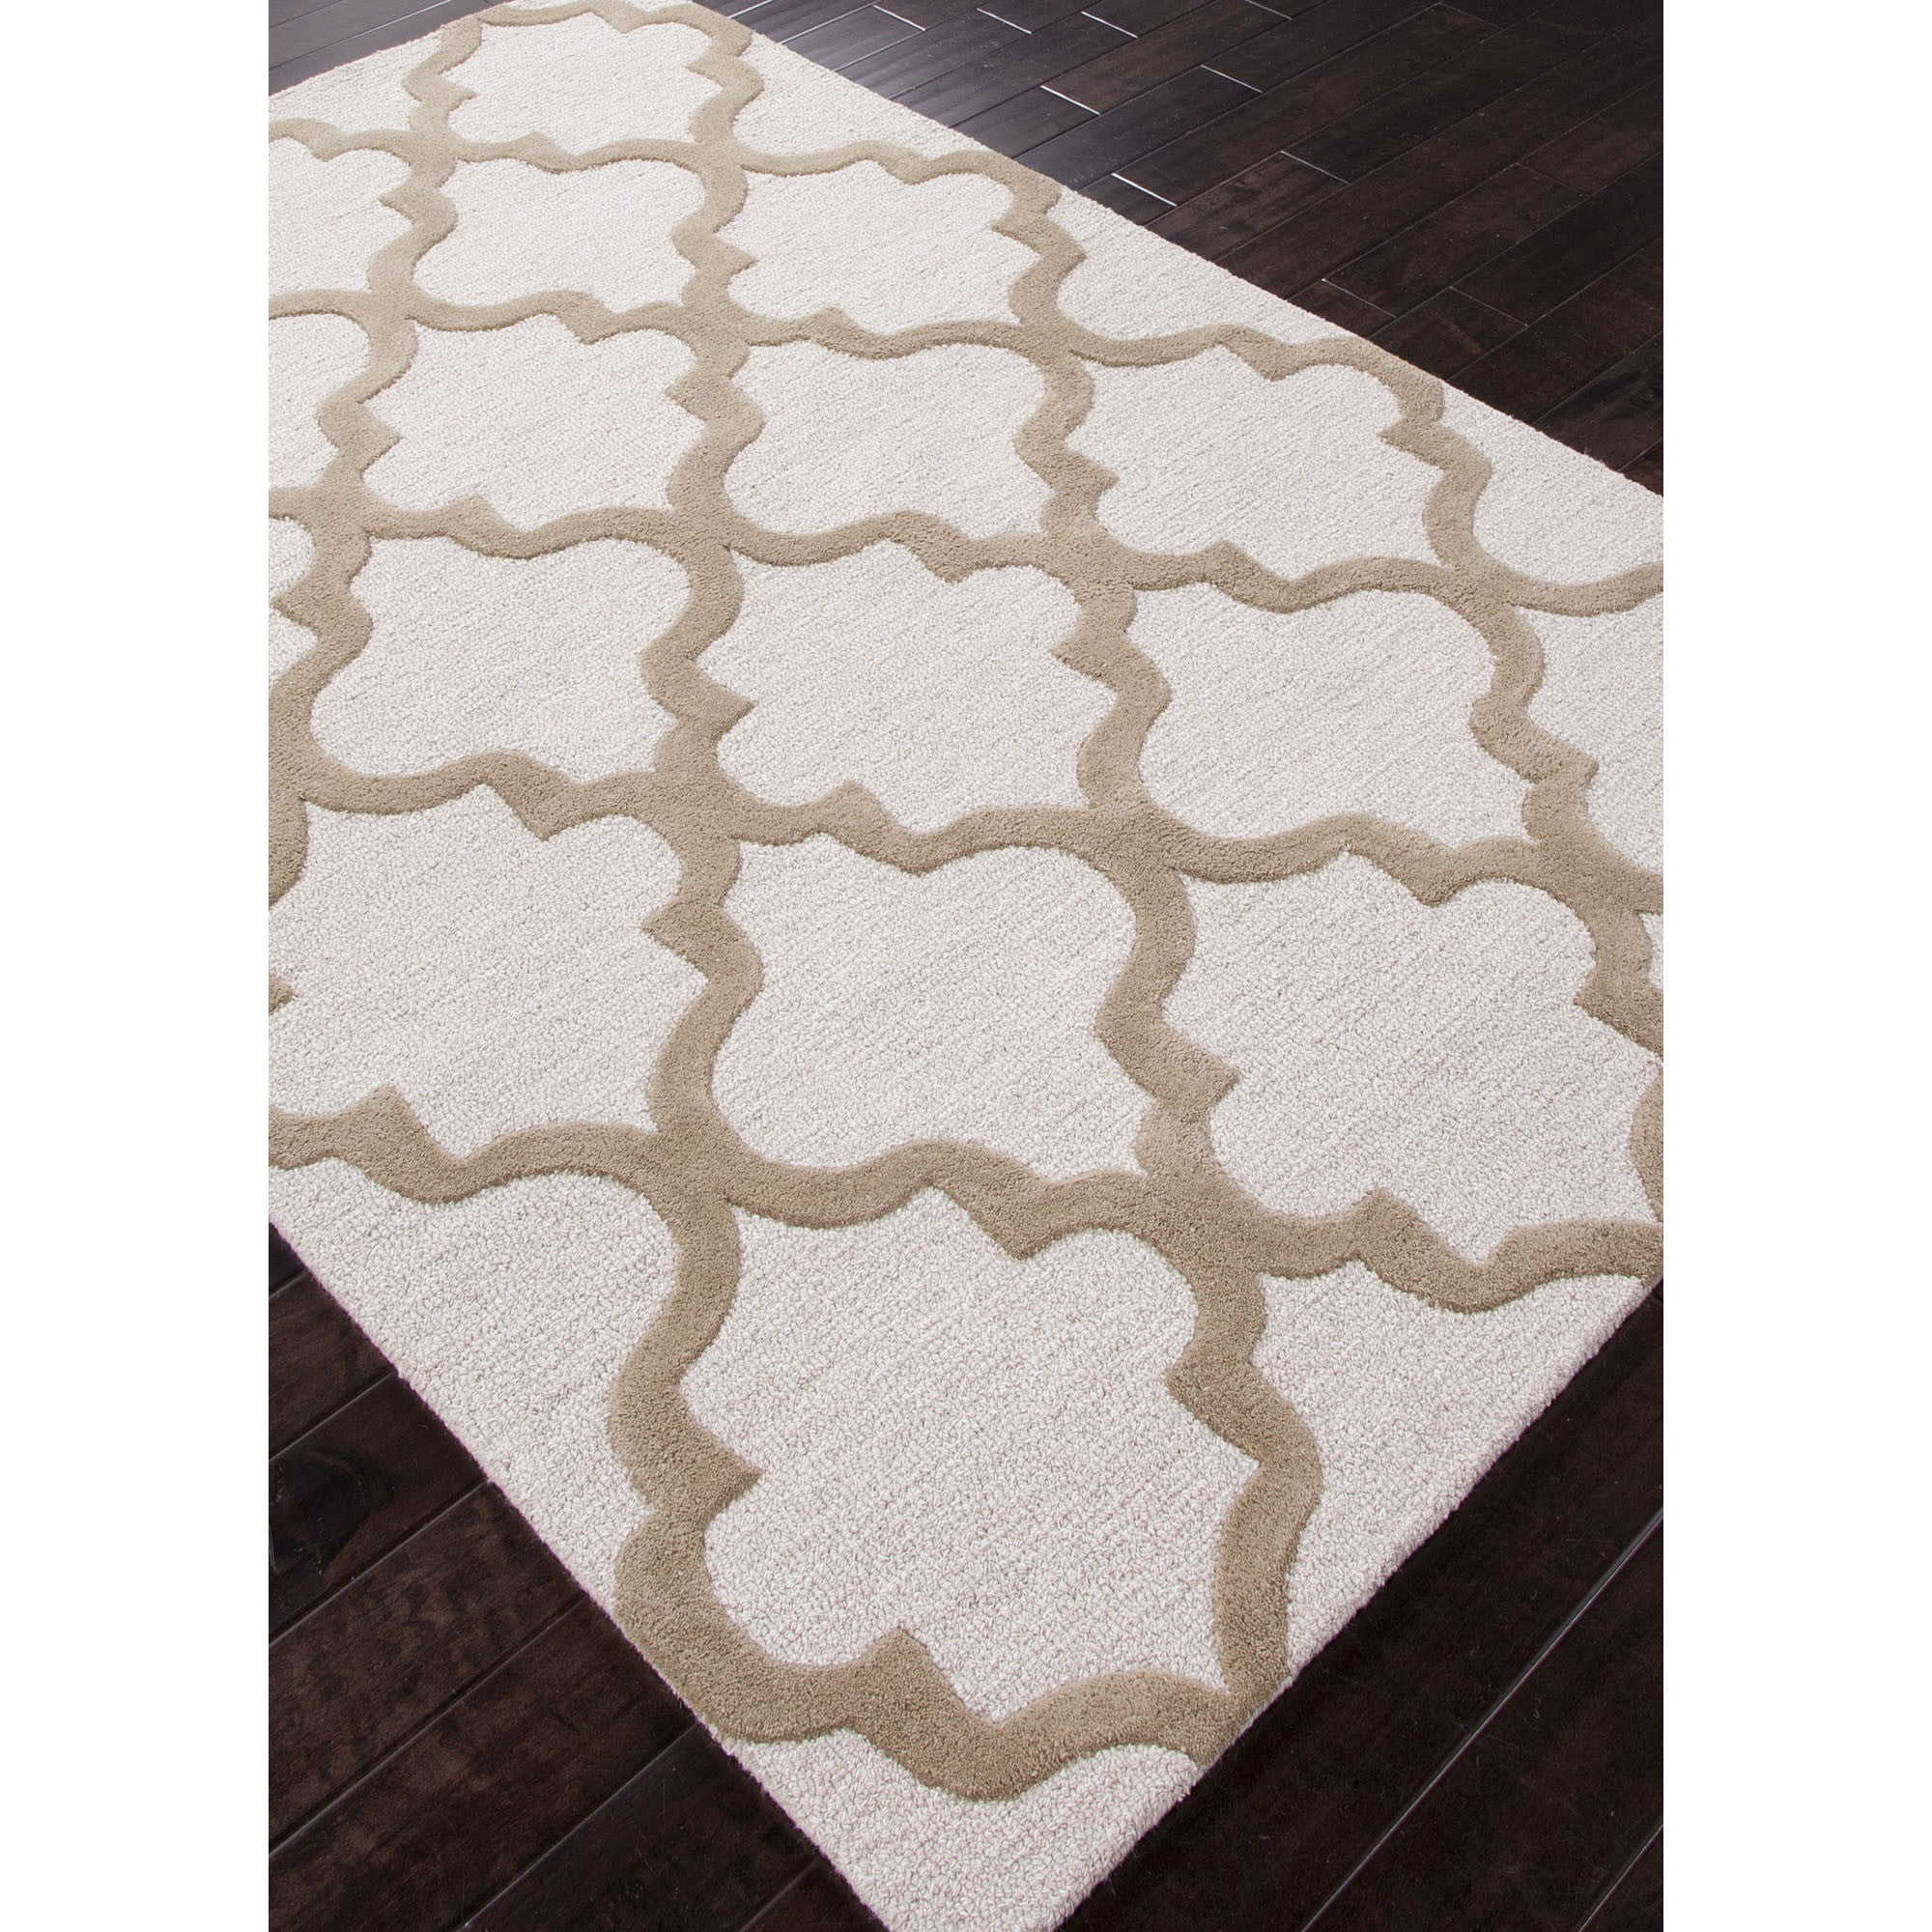 Jaipur rugs modern geometric pattern ivory taupe wool area for Modern wool area rugs